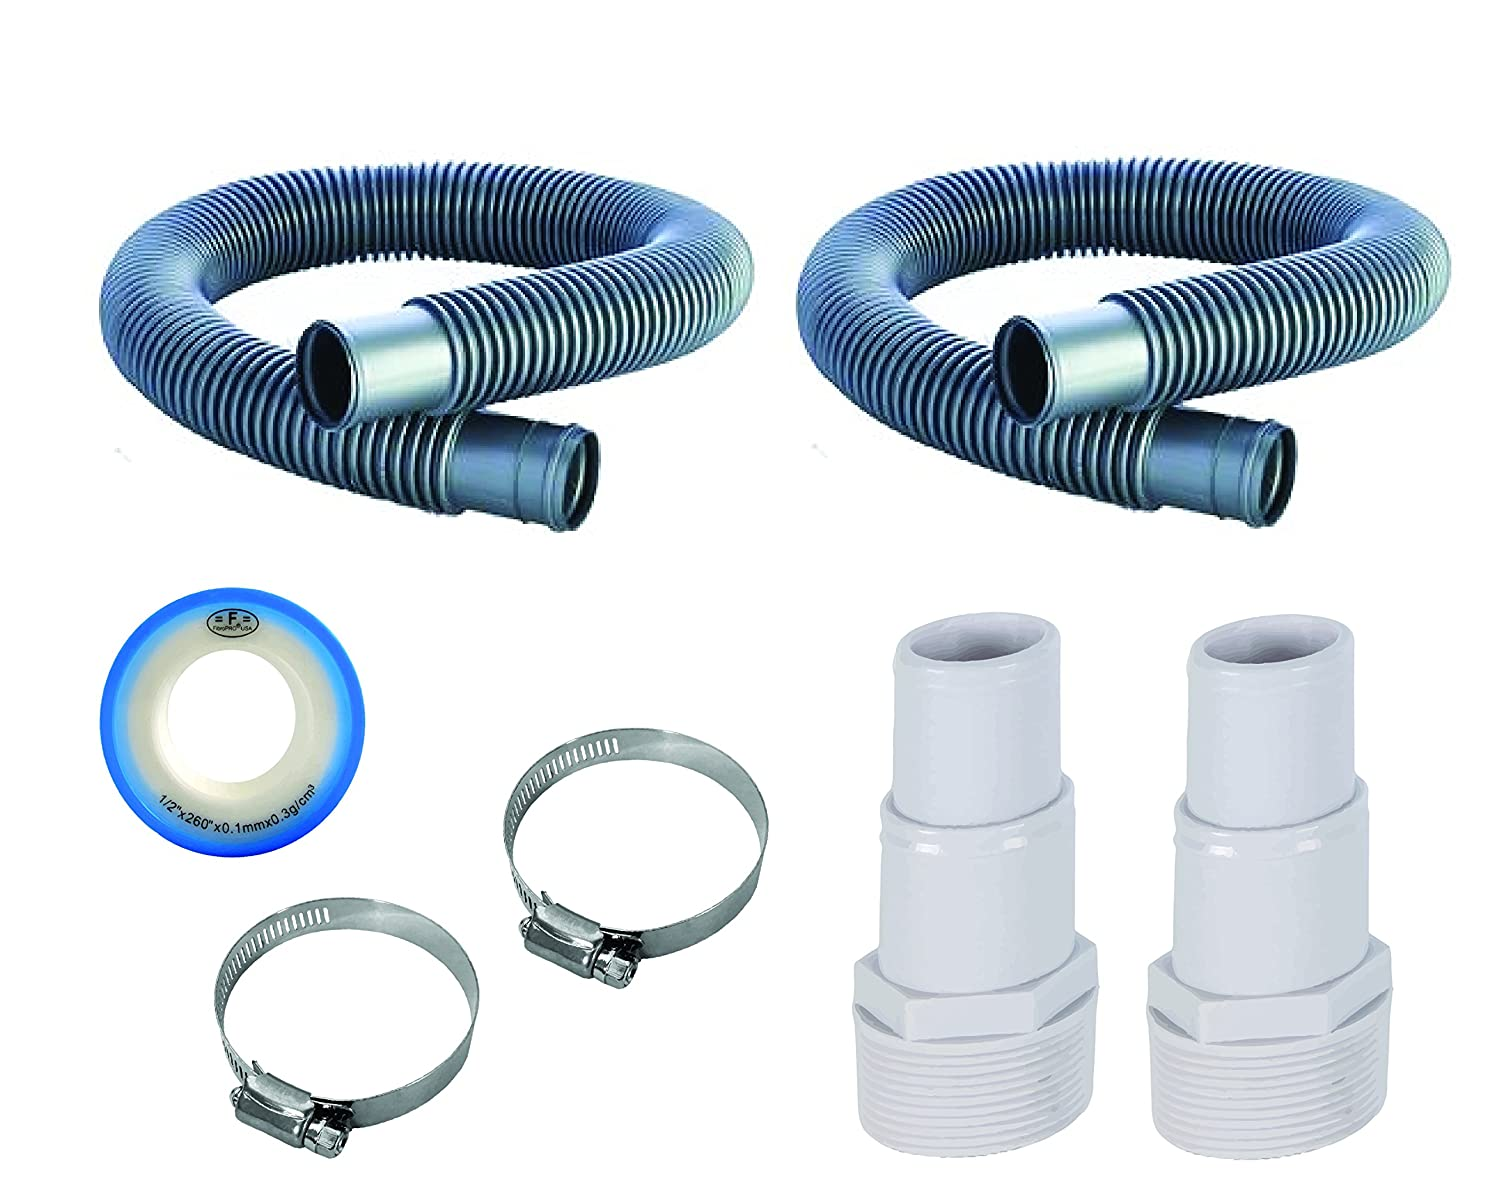 "Fibropool 1 1/4"" Swimming Pool Filter Hose Replacement Kit (6 Feet, 2 Pack)"